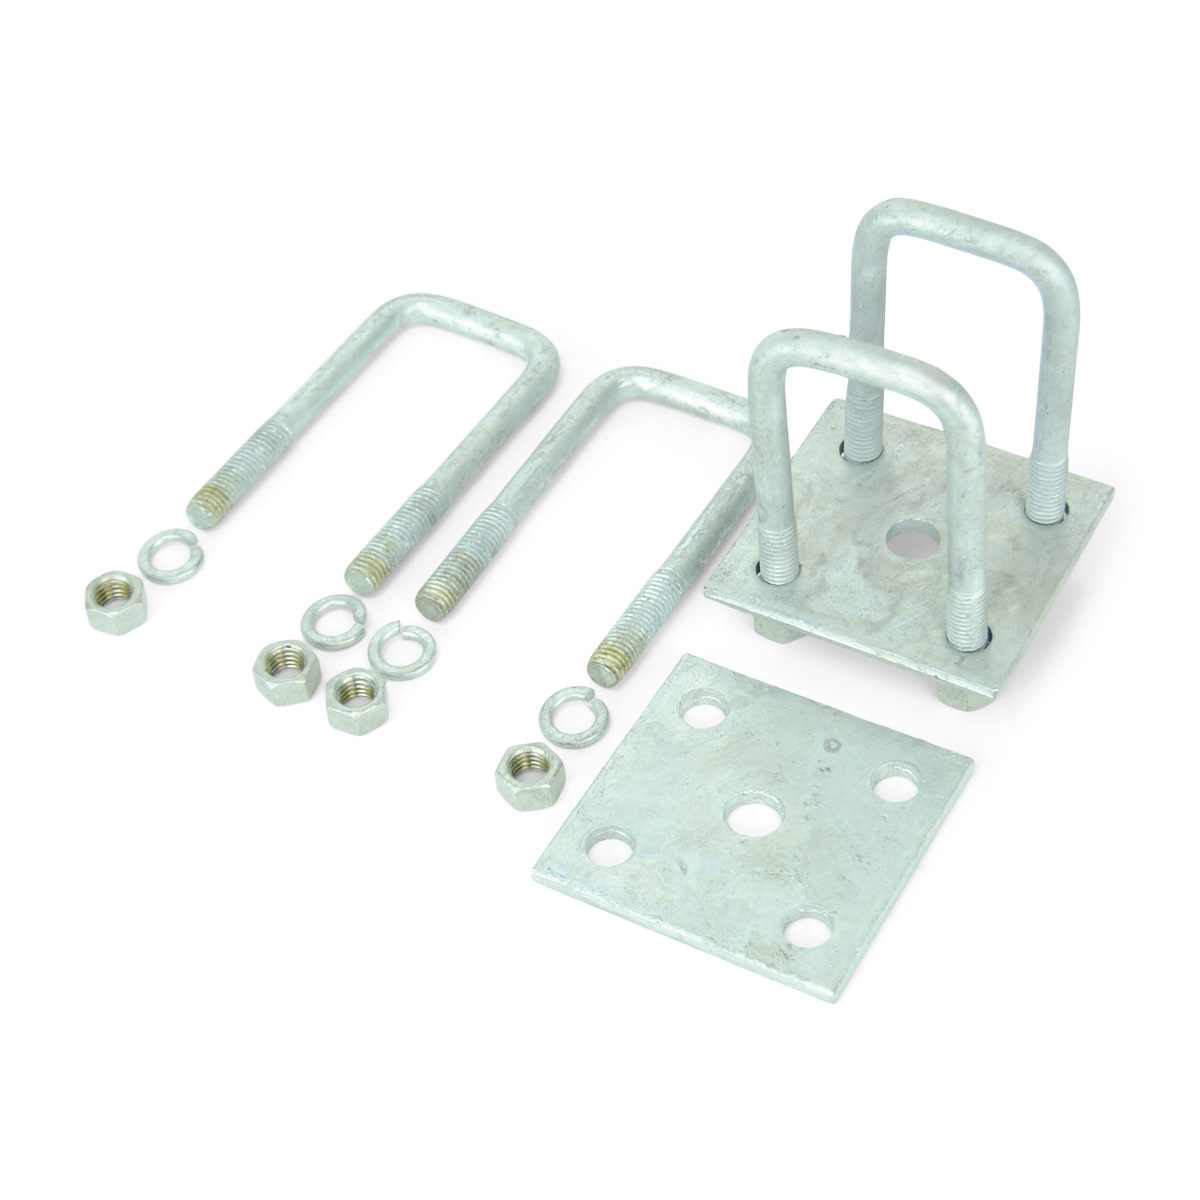 Galvanized U-Bolt Kit